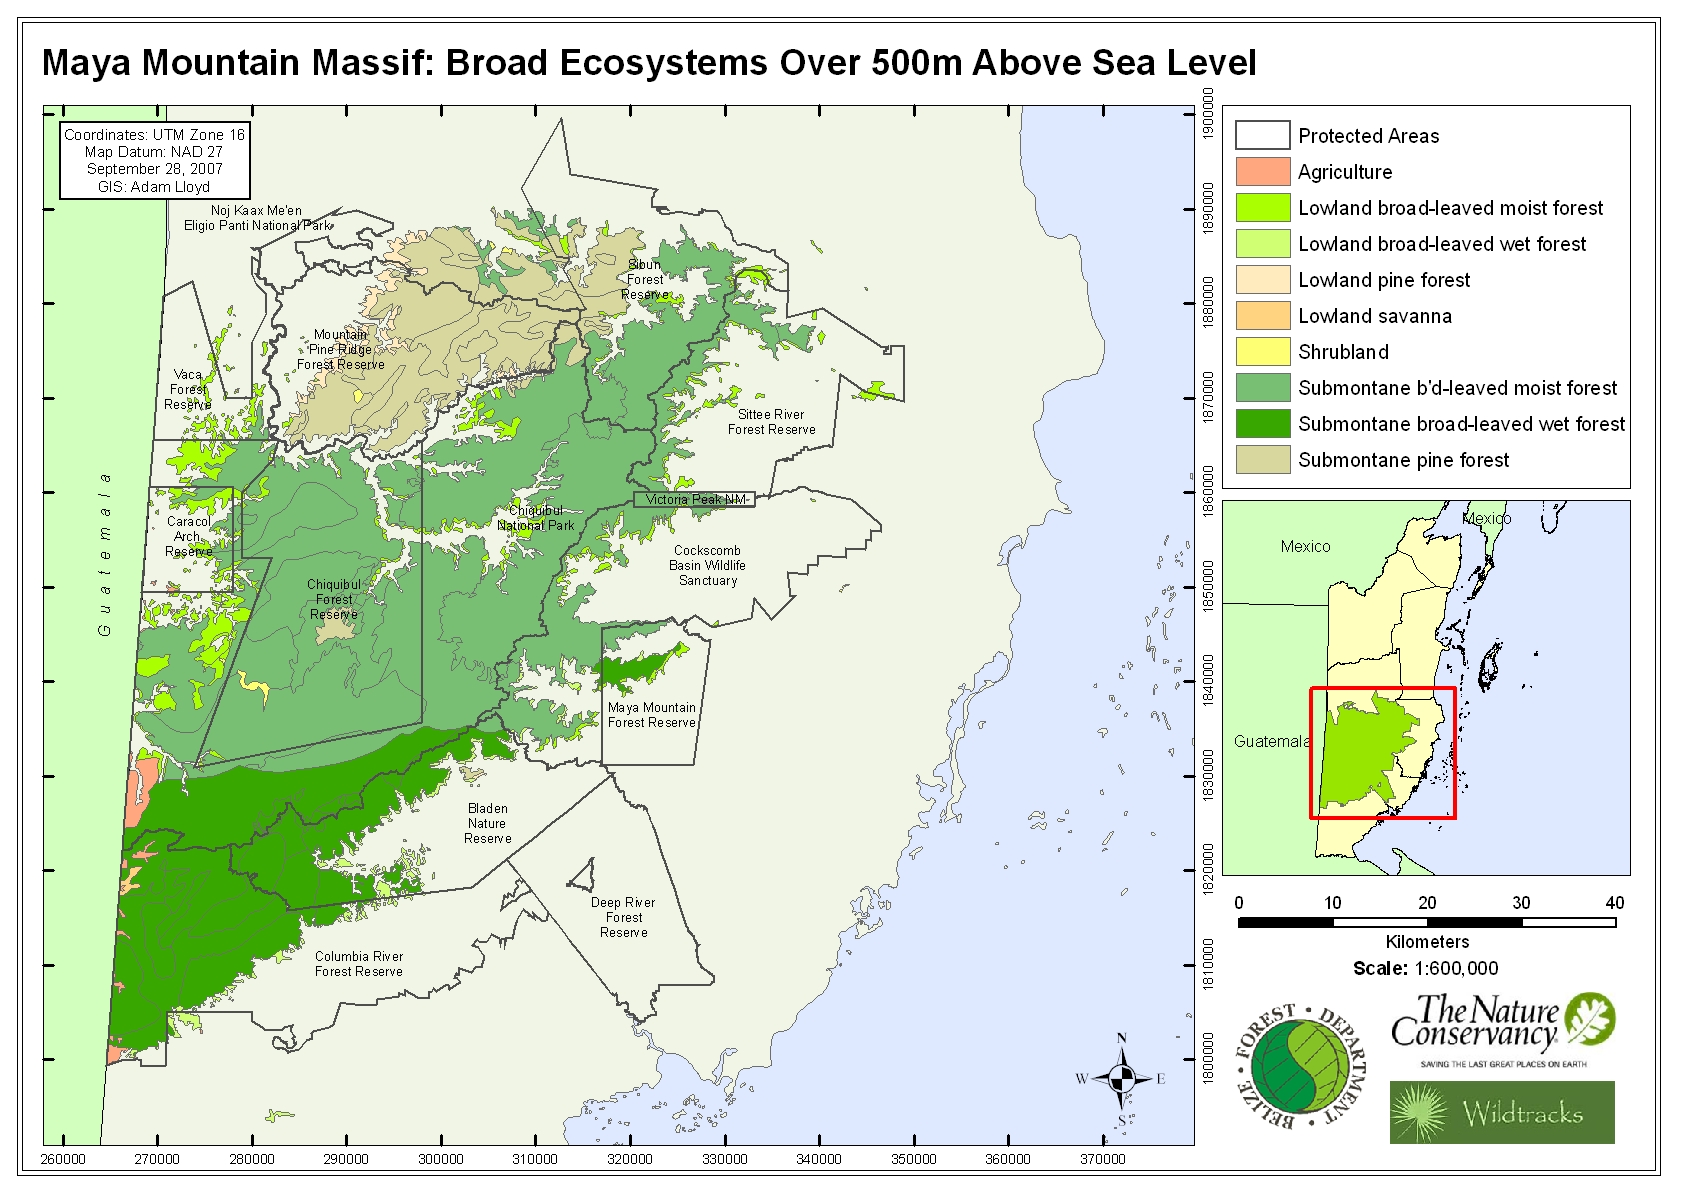 MMM - Broad Ecosystems over 500m